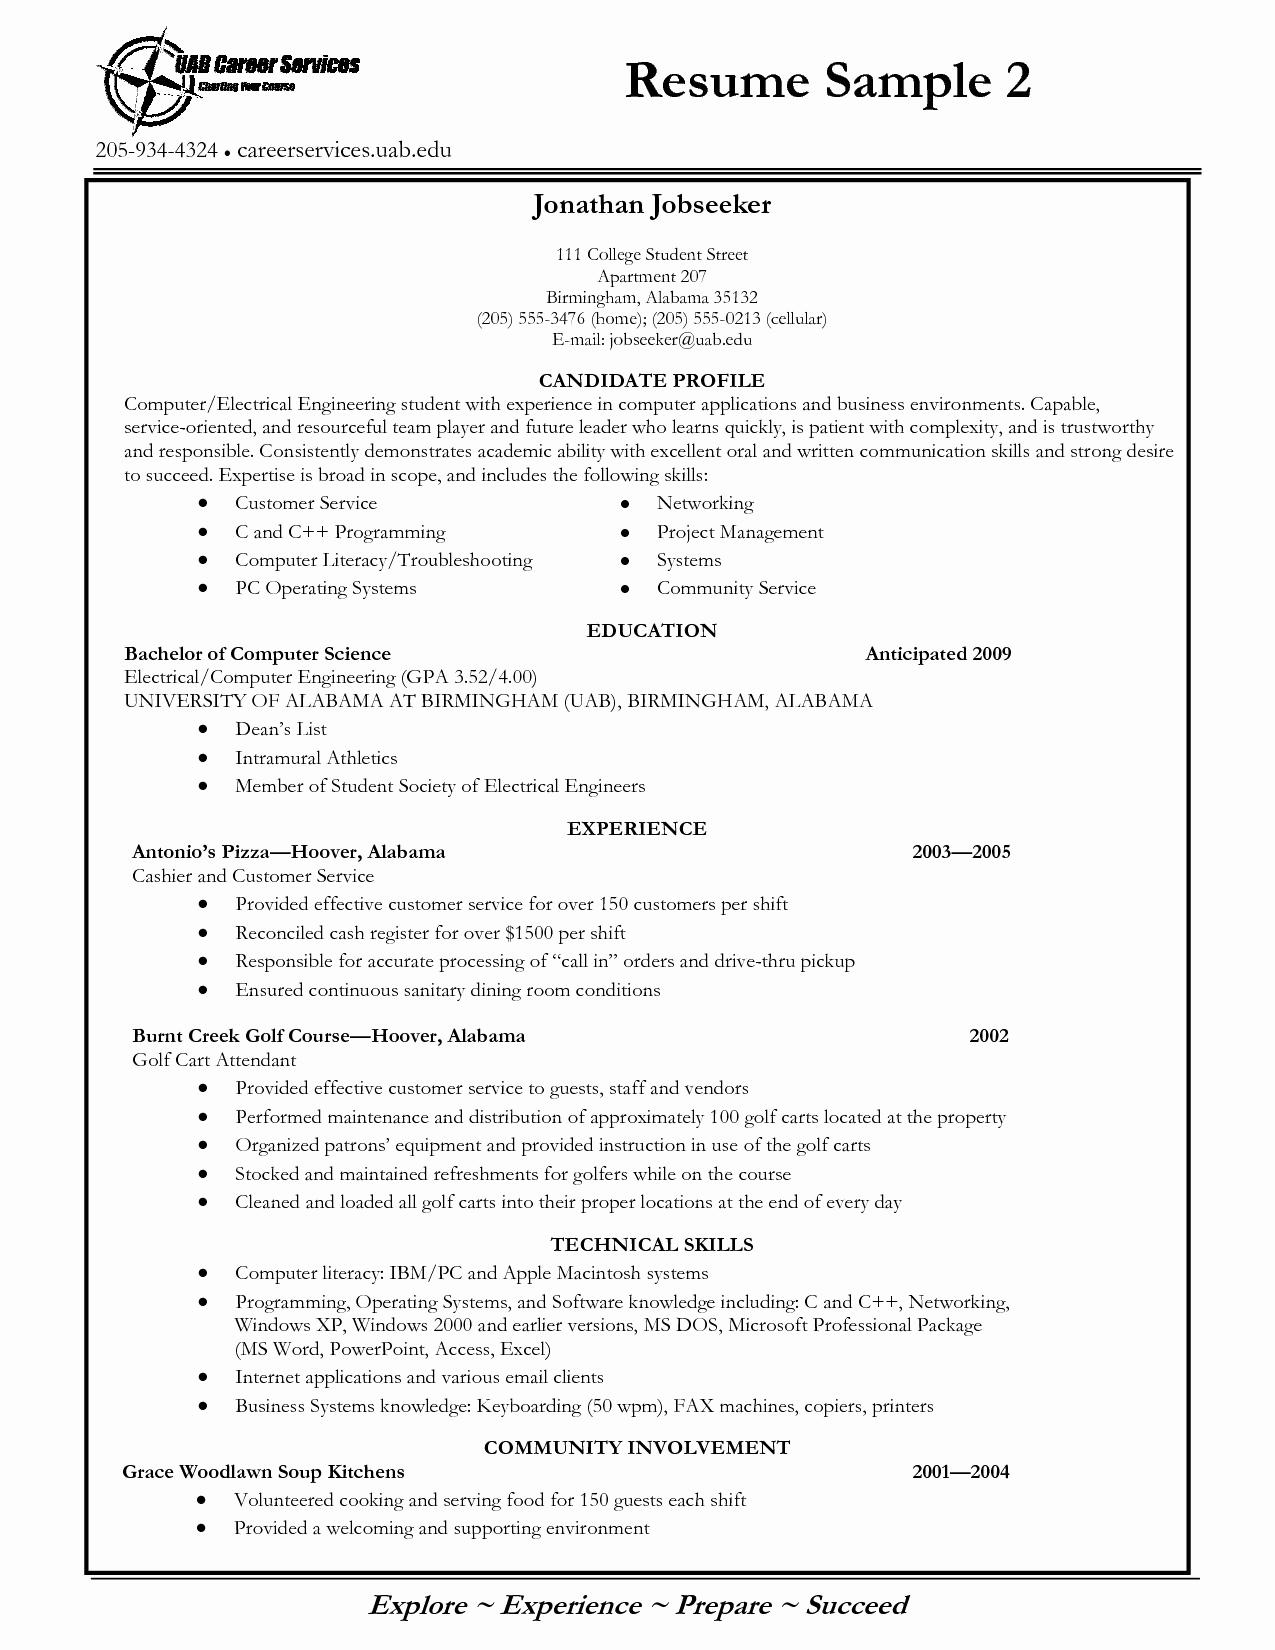 university of alabama resume template Collection-Business Analyst Resume Samples New Business Analyst Resume Templates Samples Reference Elegant Sample 8-d